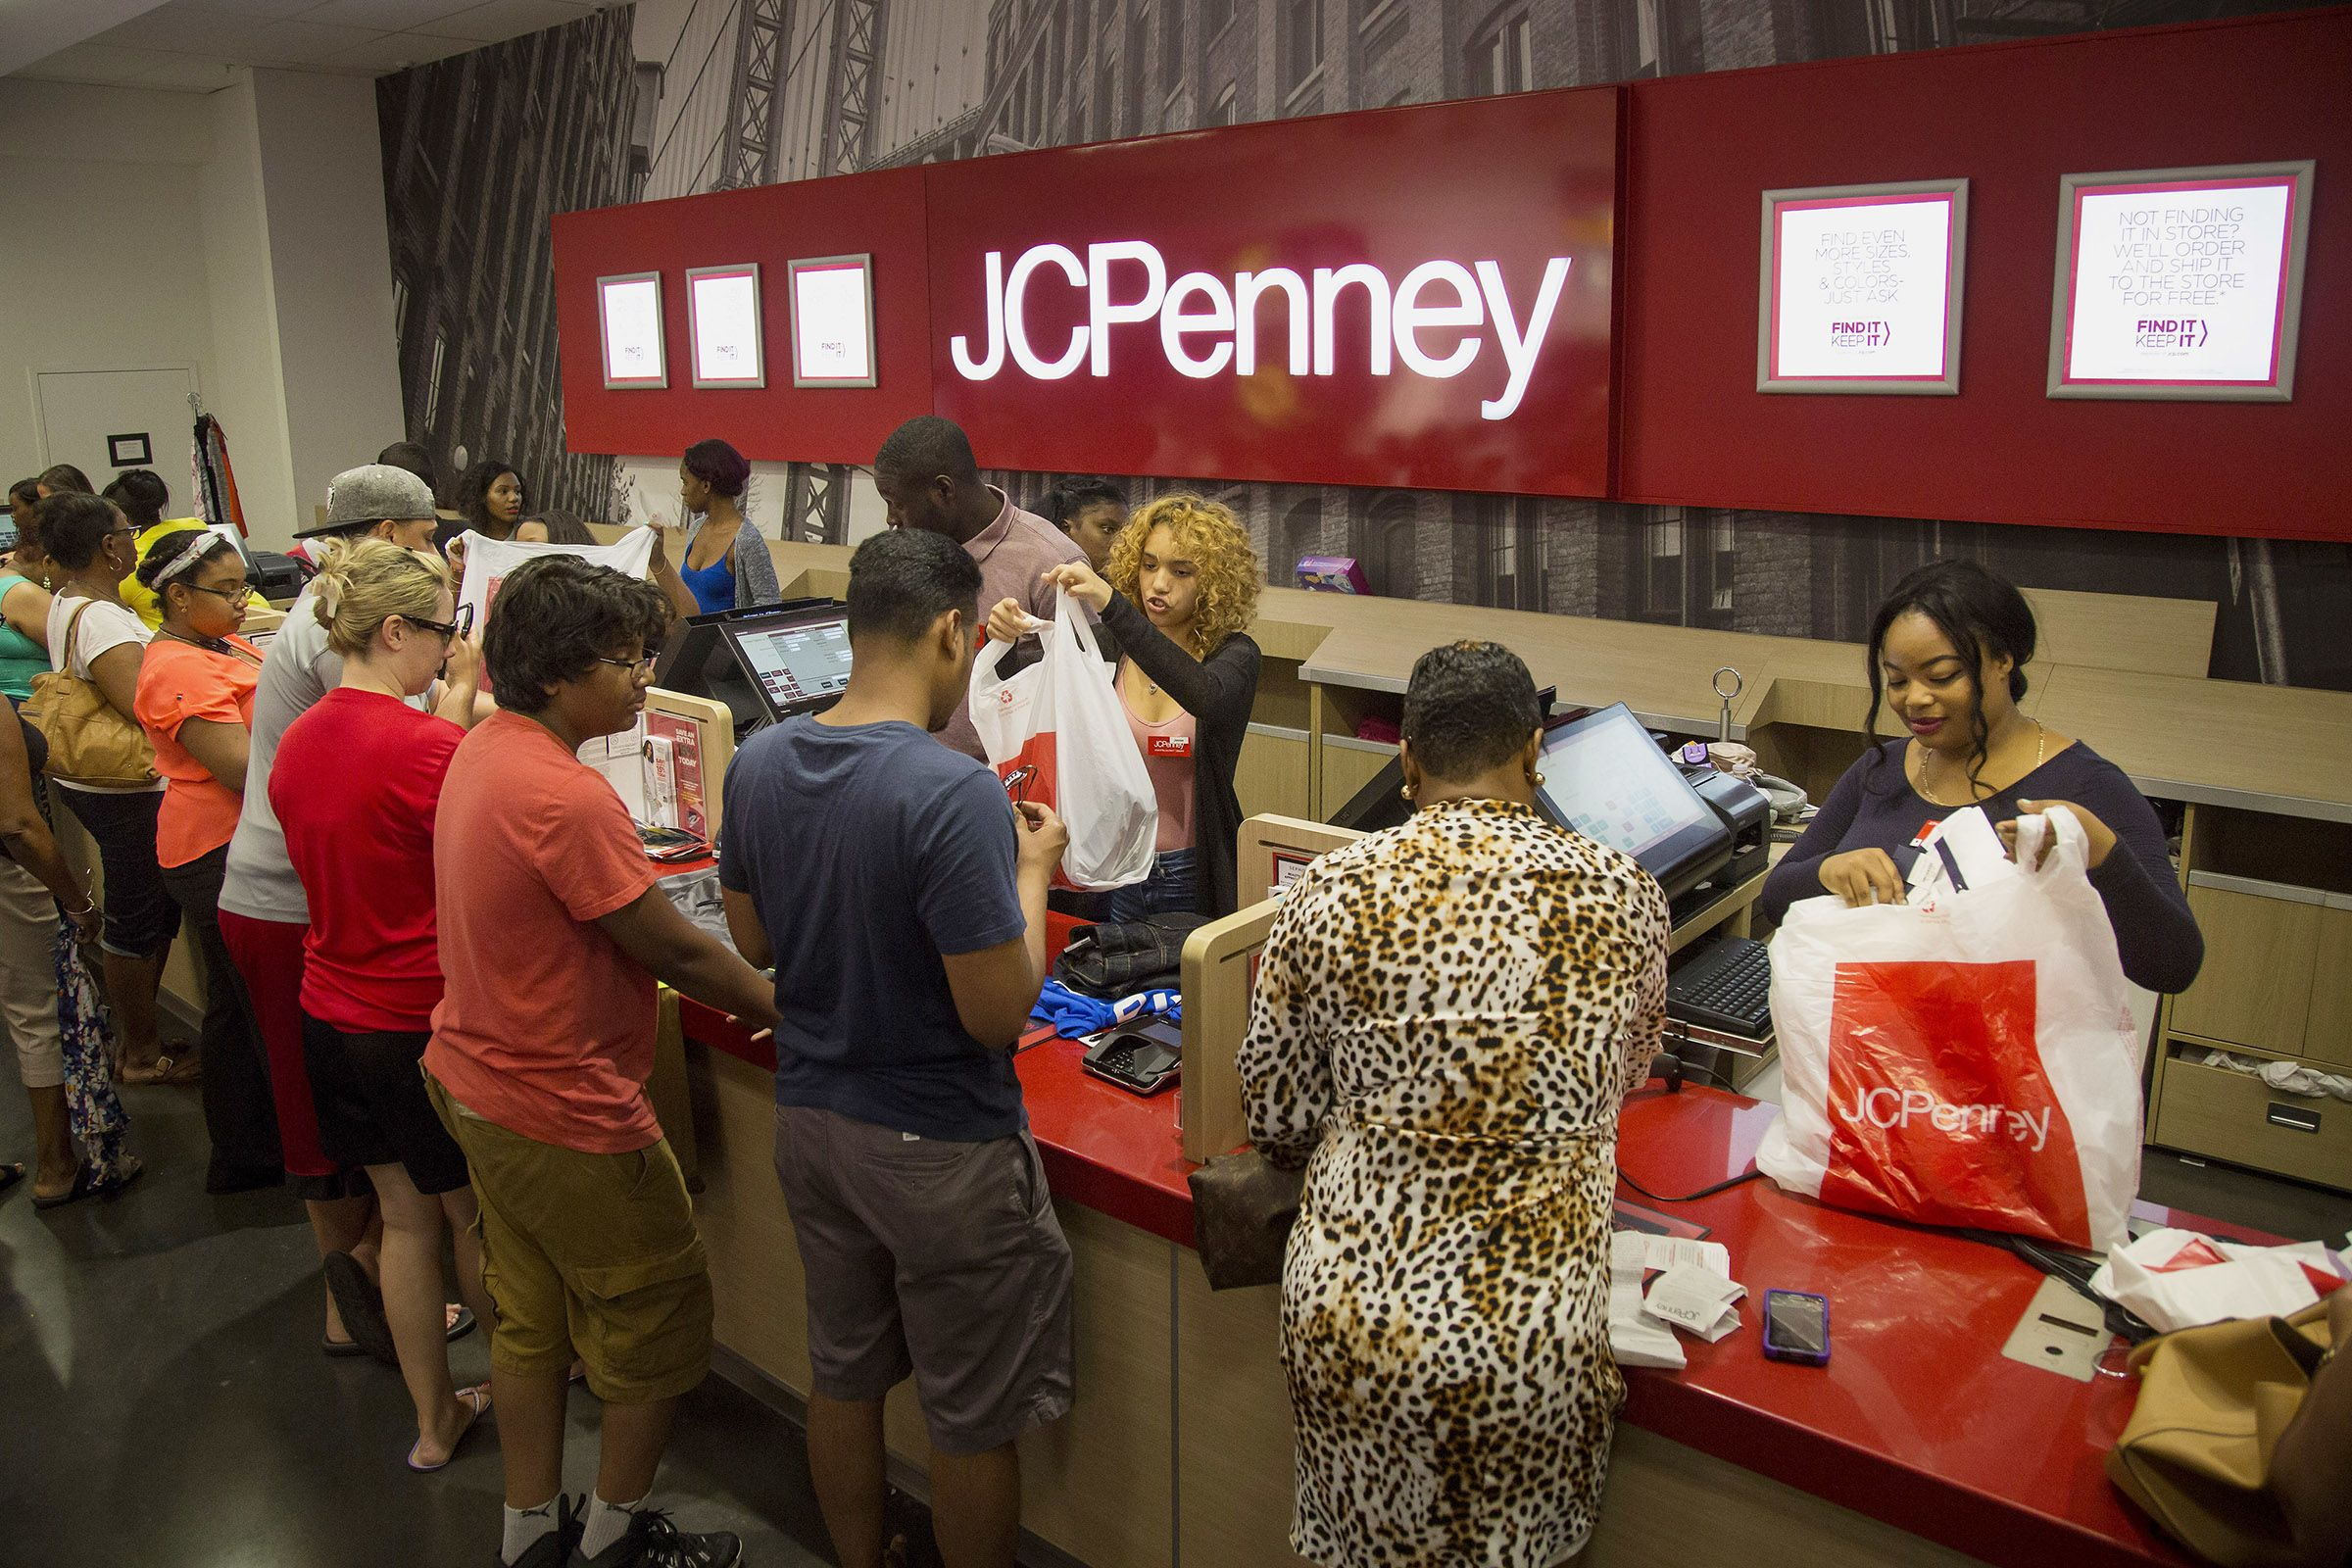 JC Penney is trying new things to stay afloat, but stock could be delisted